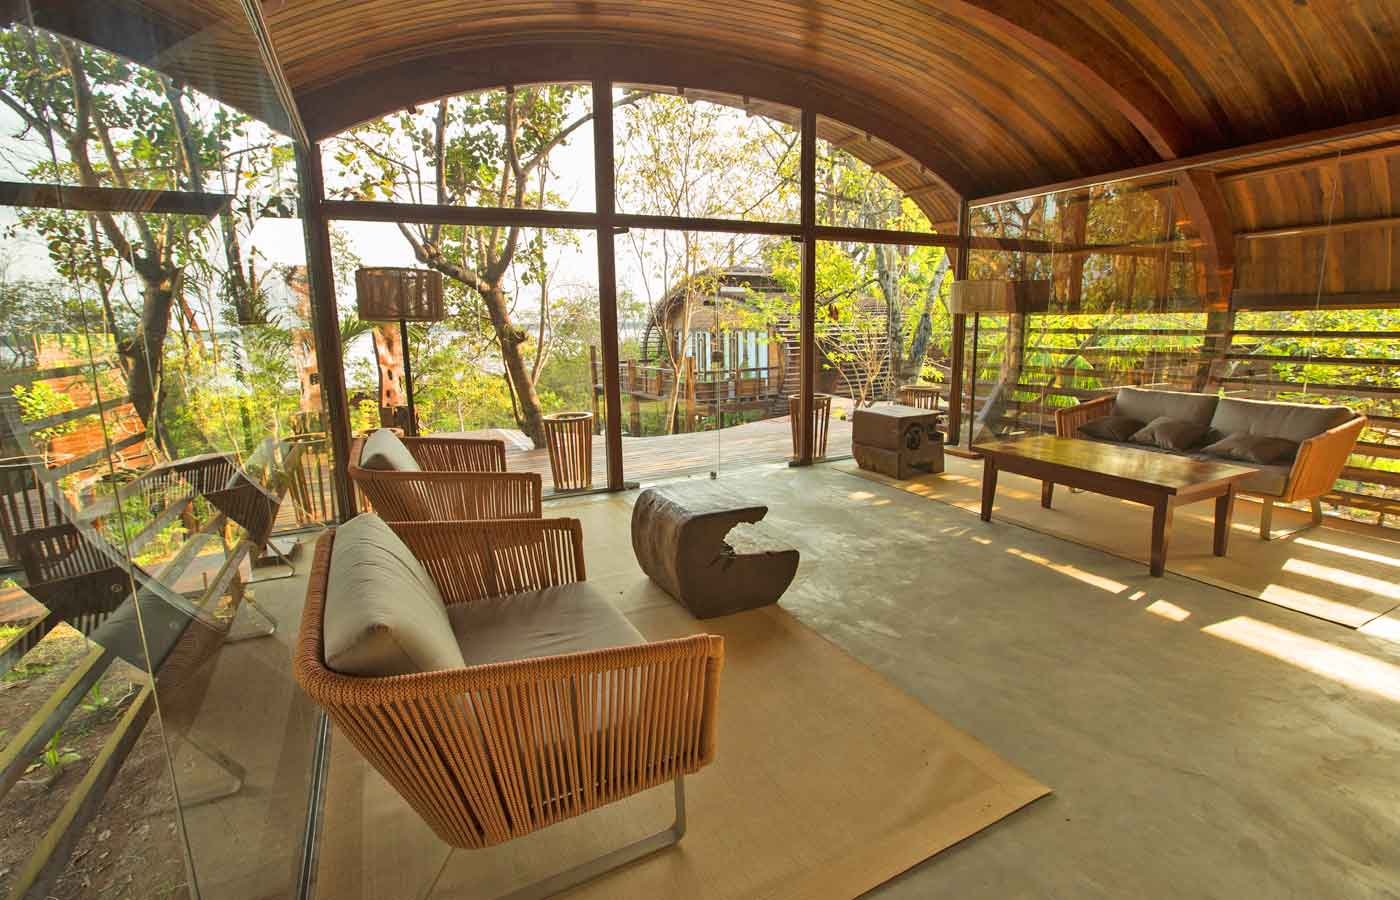 Wide arches of richly coloured wood blend with the surrounding forest at the Mirante-do-Gaviao in Amazonas, Brazil